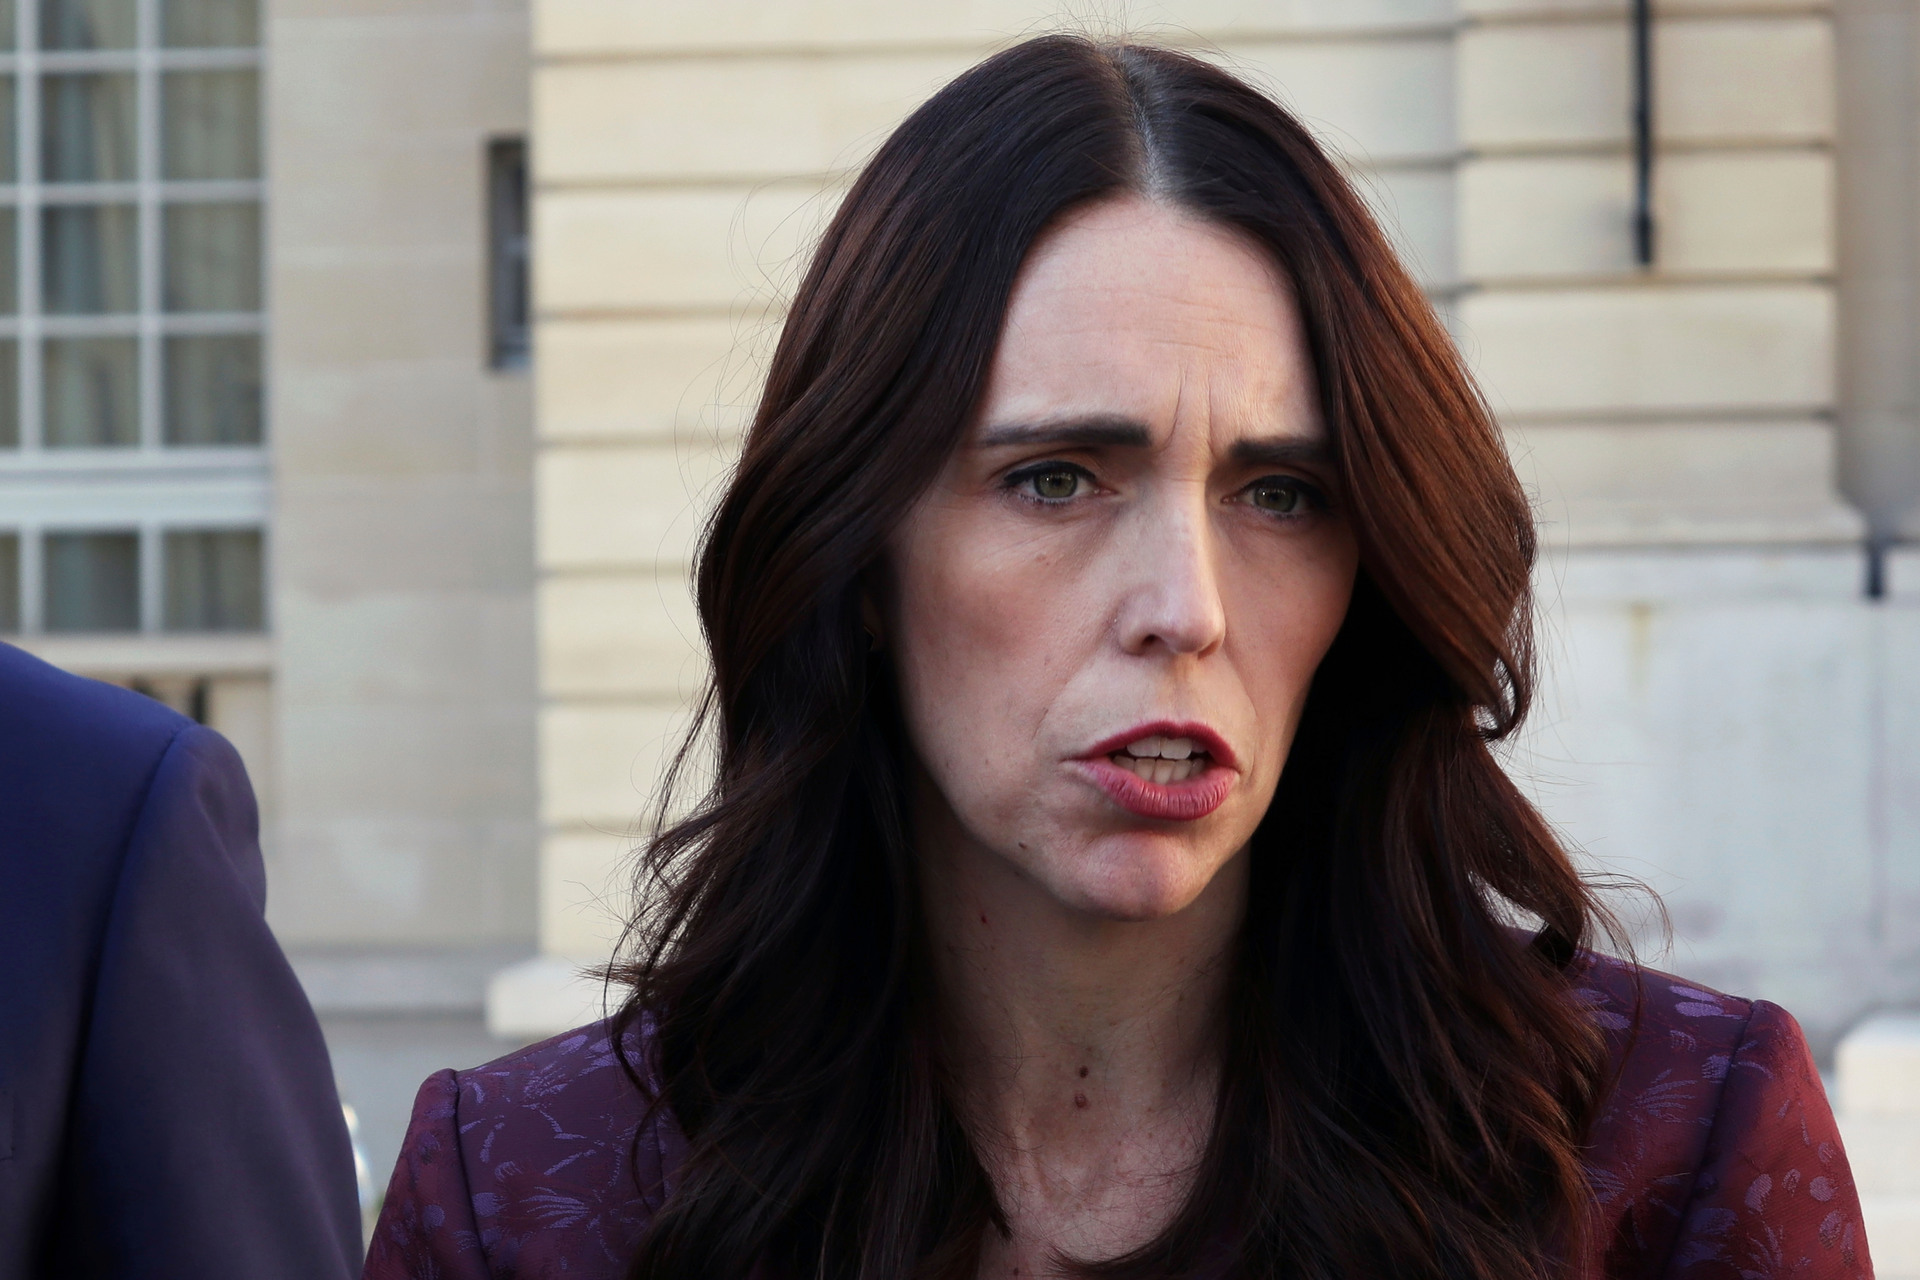 Christchurch Call may lead to broader work into how technology aids radicalisation